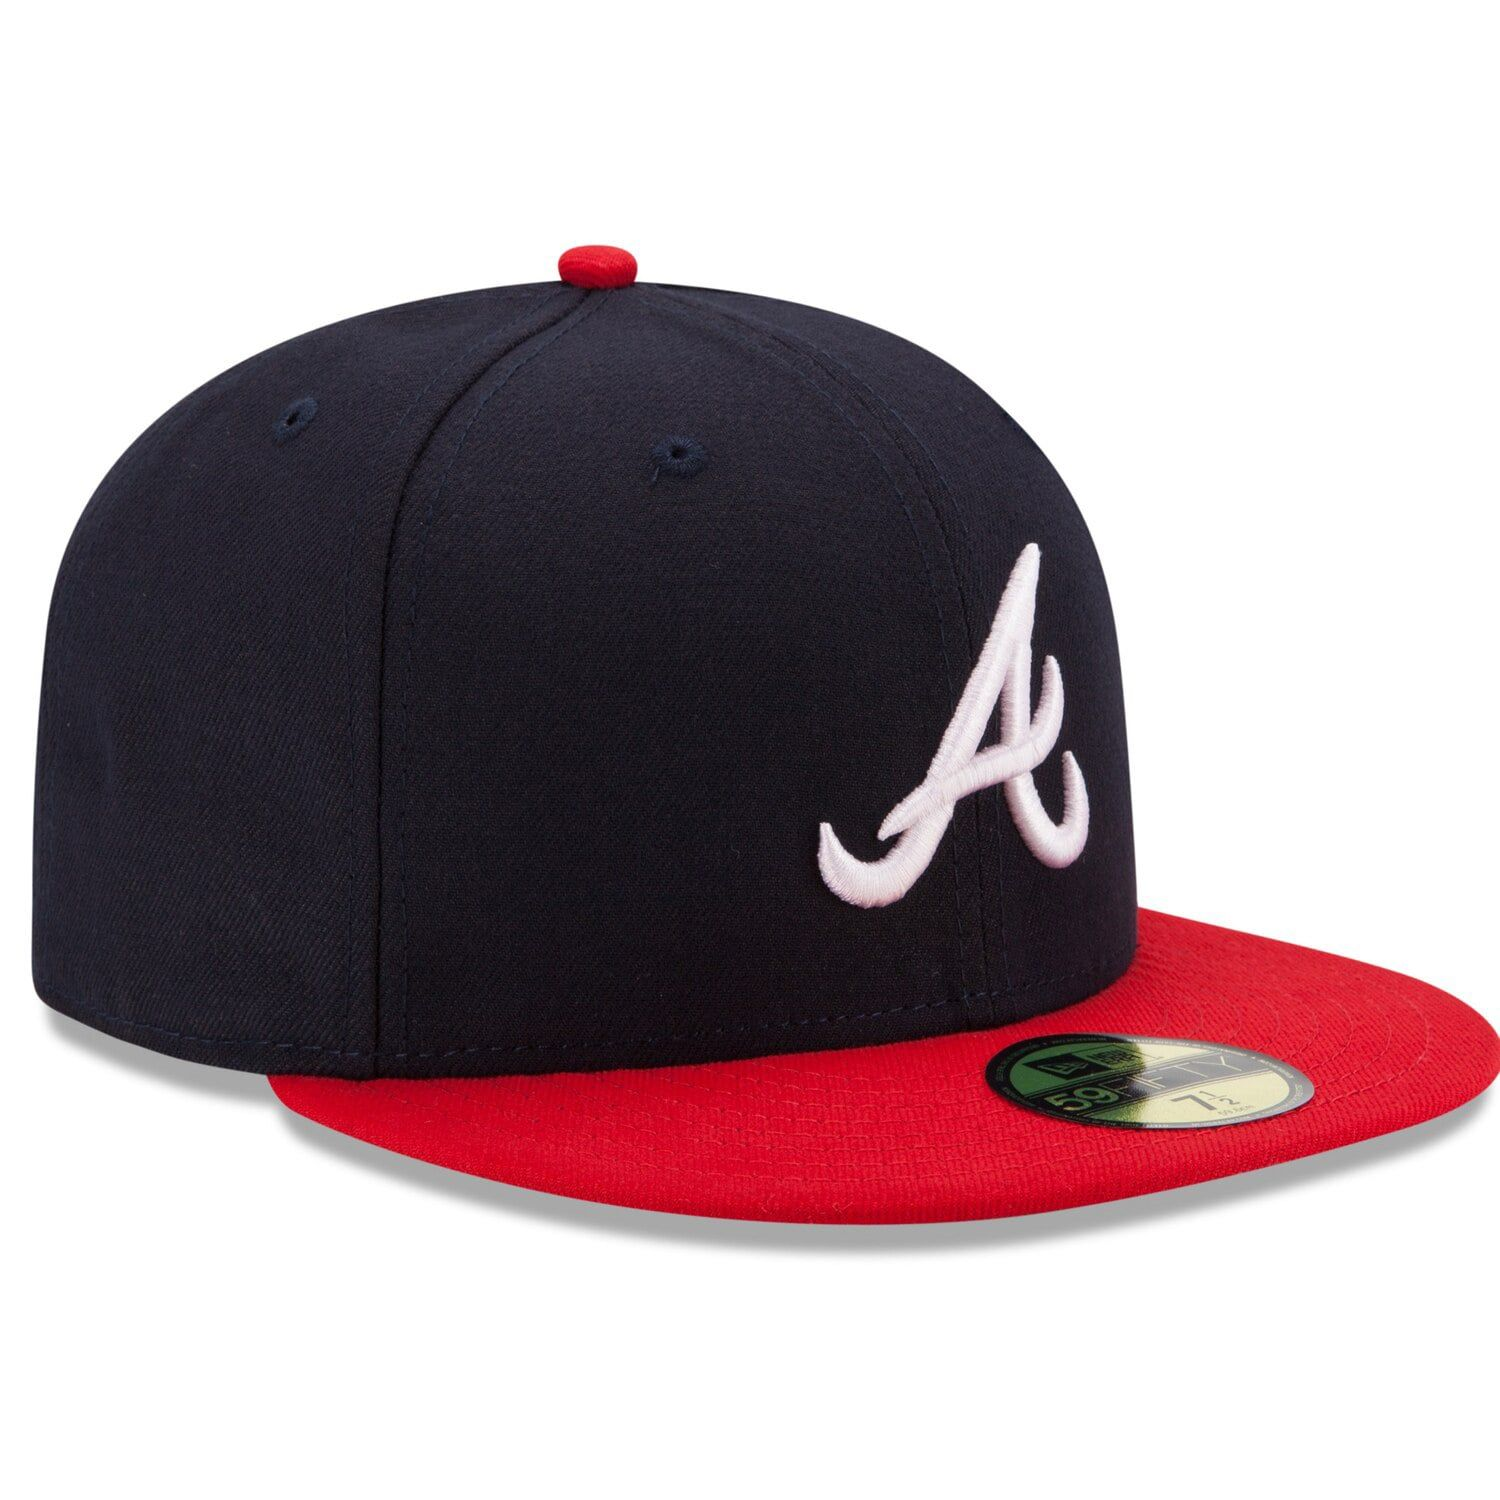 Men S New Era Navy Red Atlanta Braves Home Authentic Collection On Field 59fifty Fitted Hat Affiliate Atlanta Affiliate Fitted Hats Atlanta Braves Braves